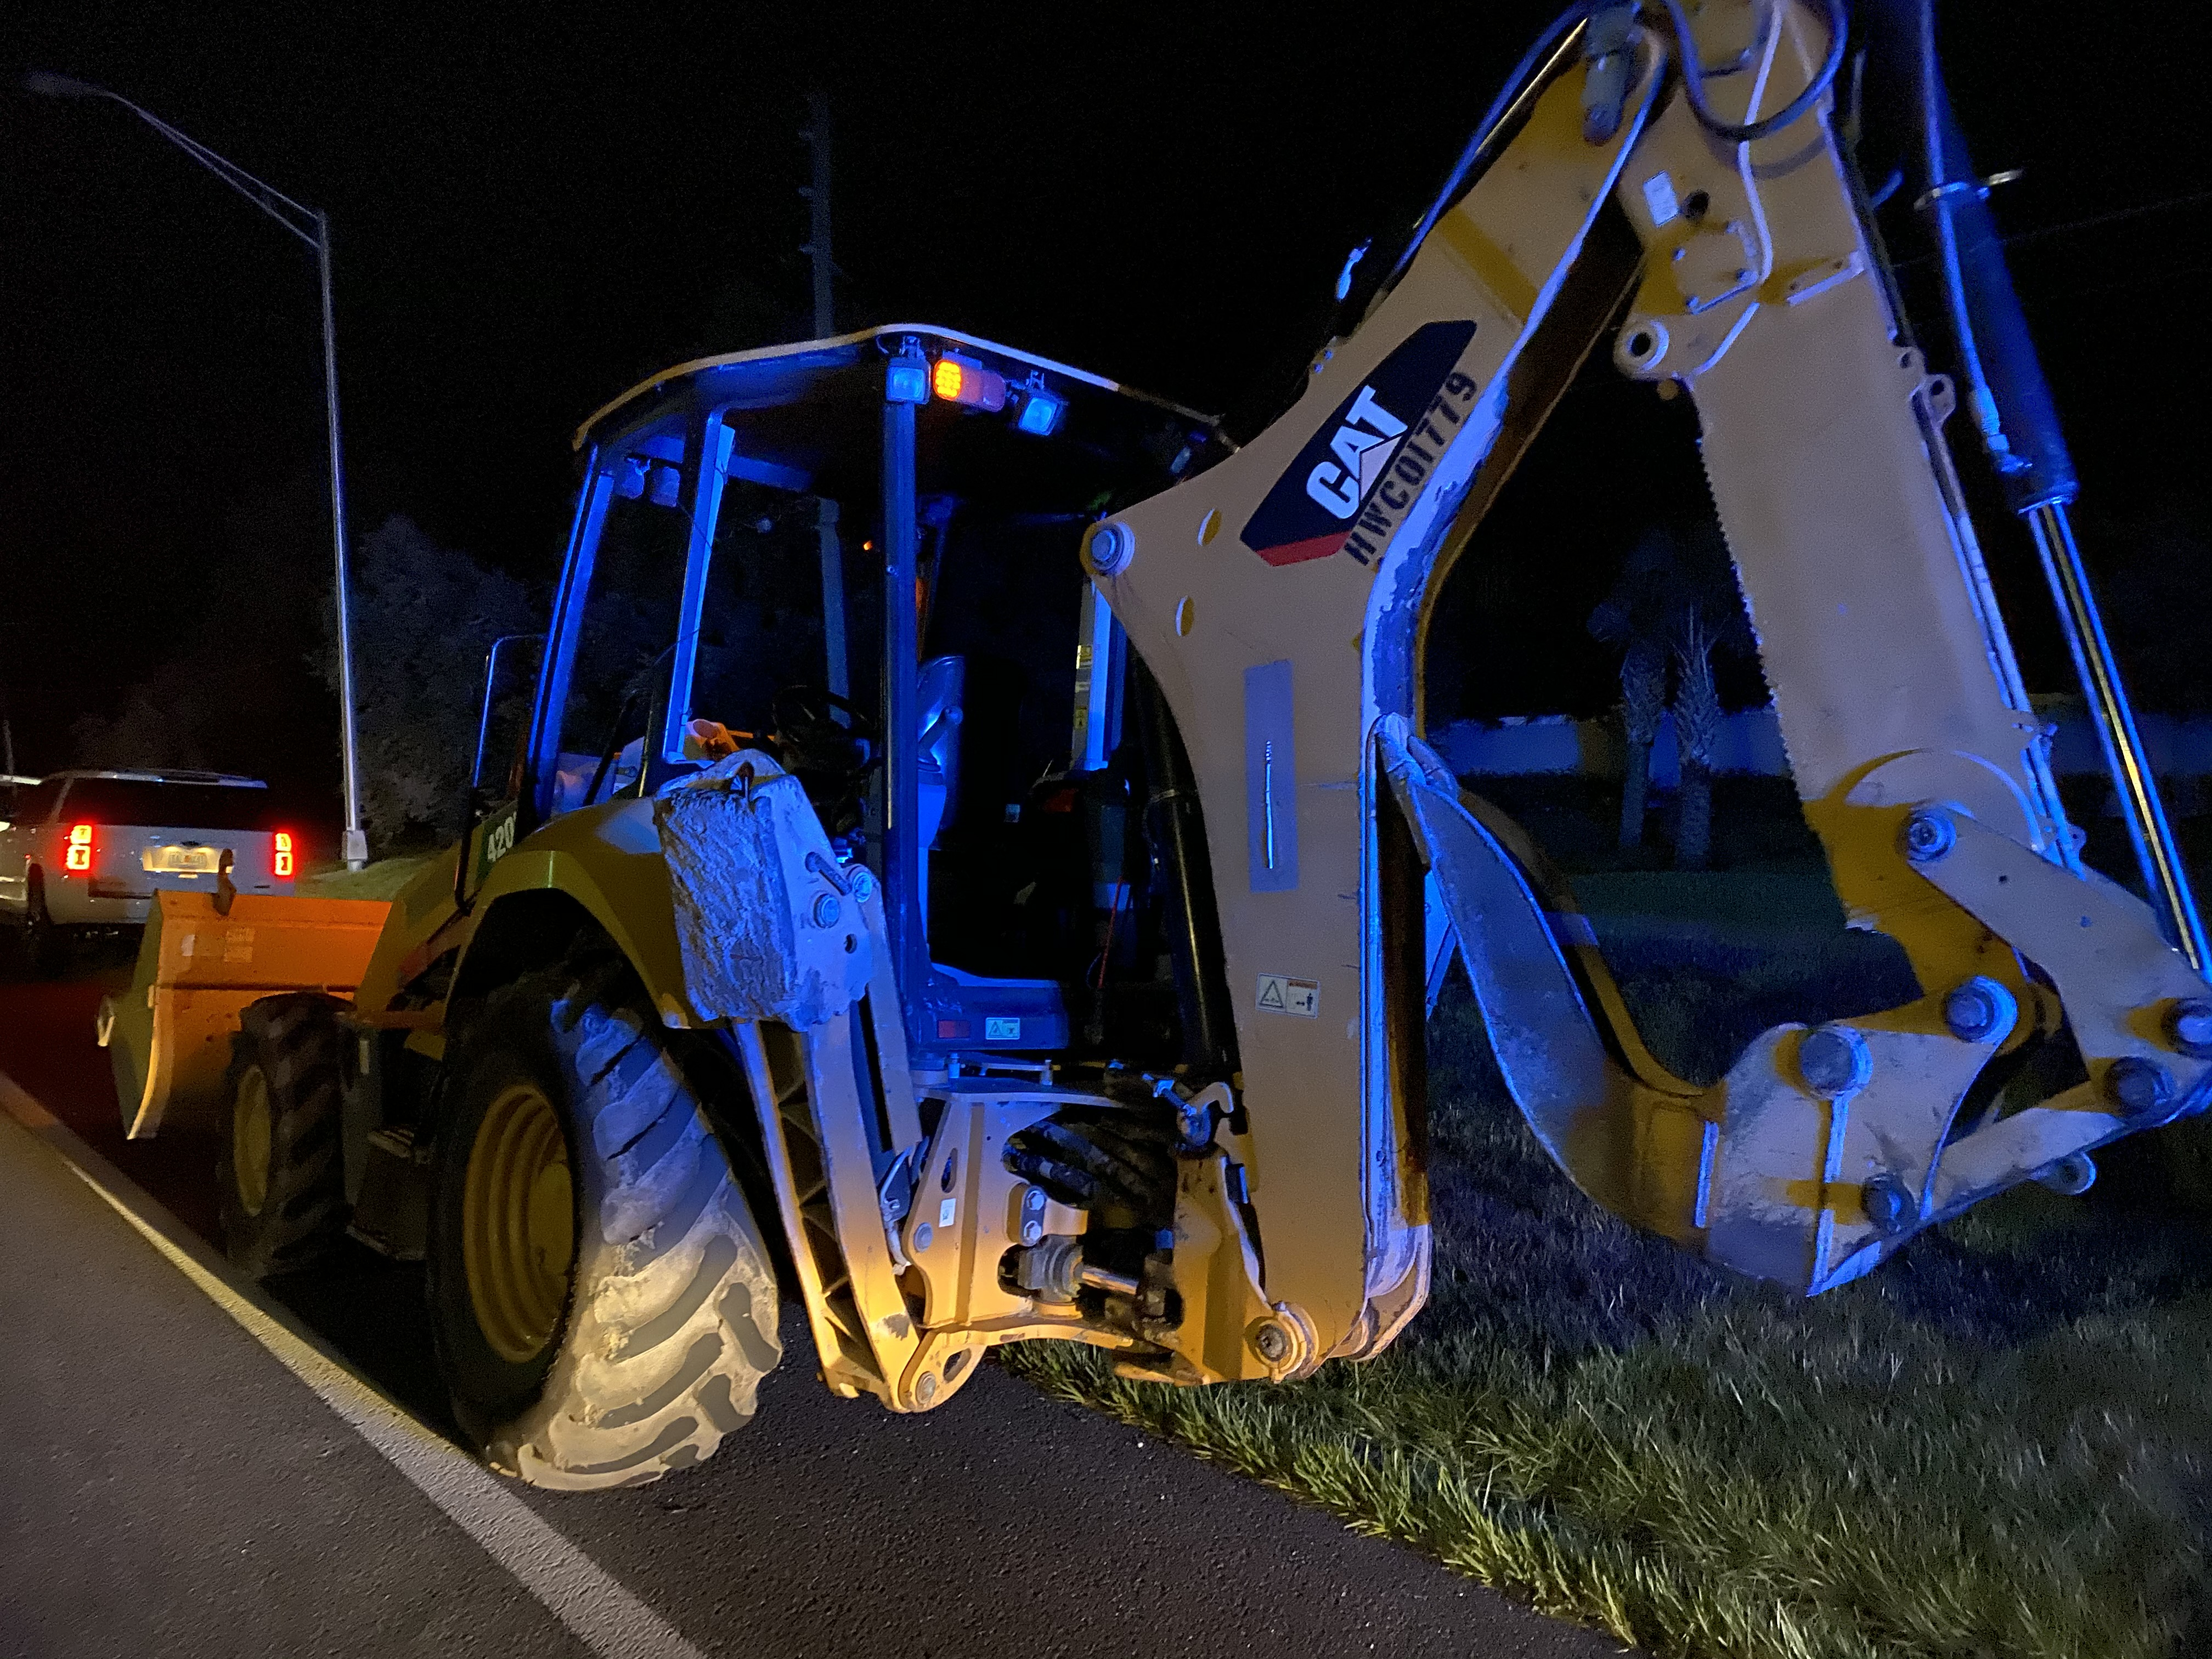 Detective Work Helps Recover Stolen Backhoe in Orlando